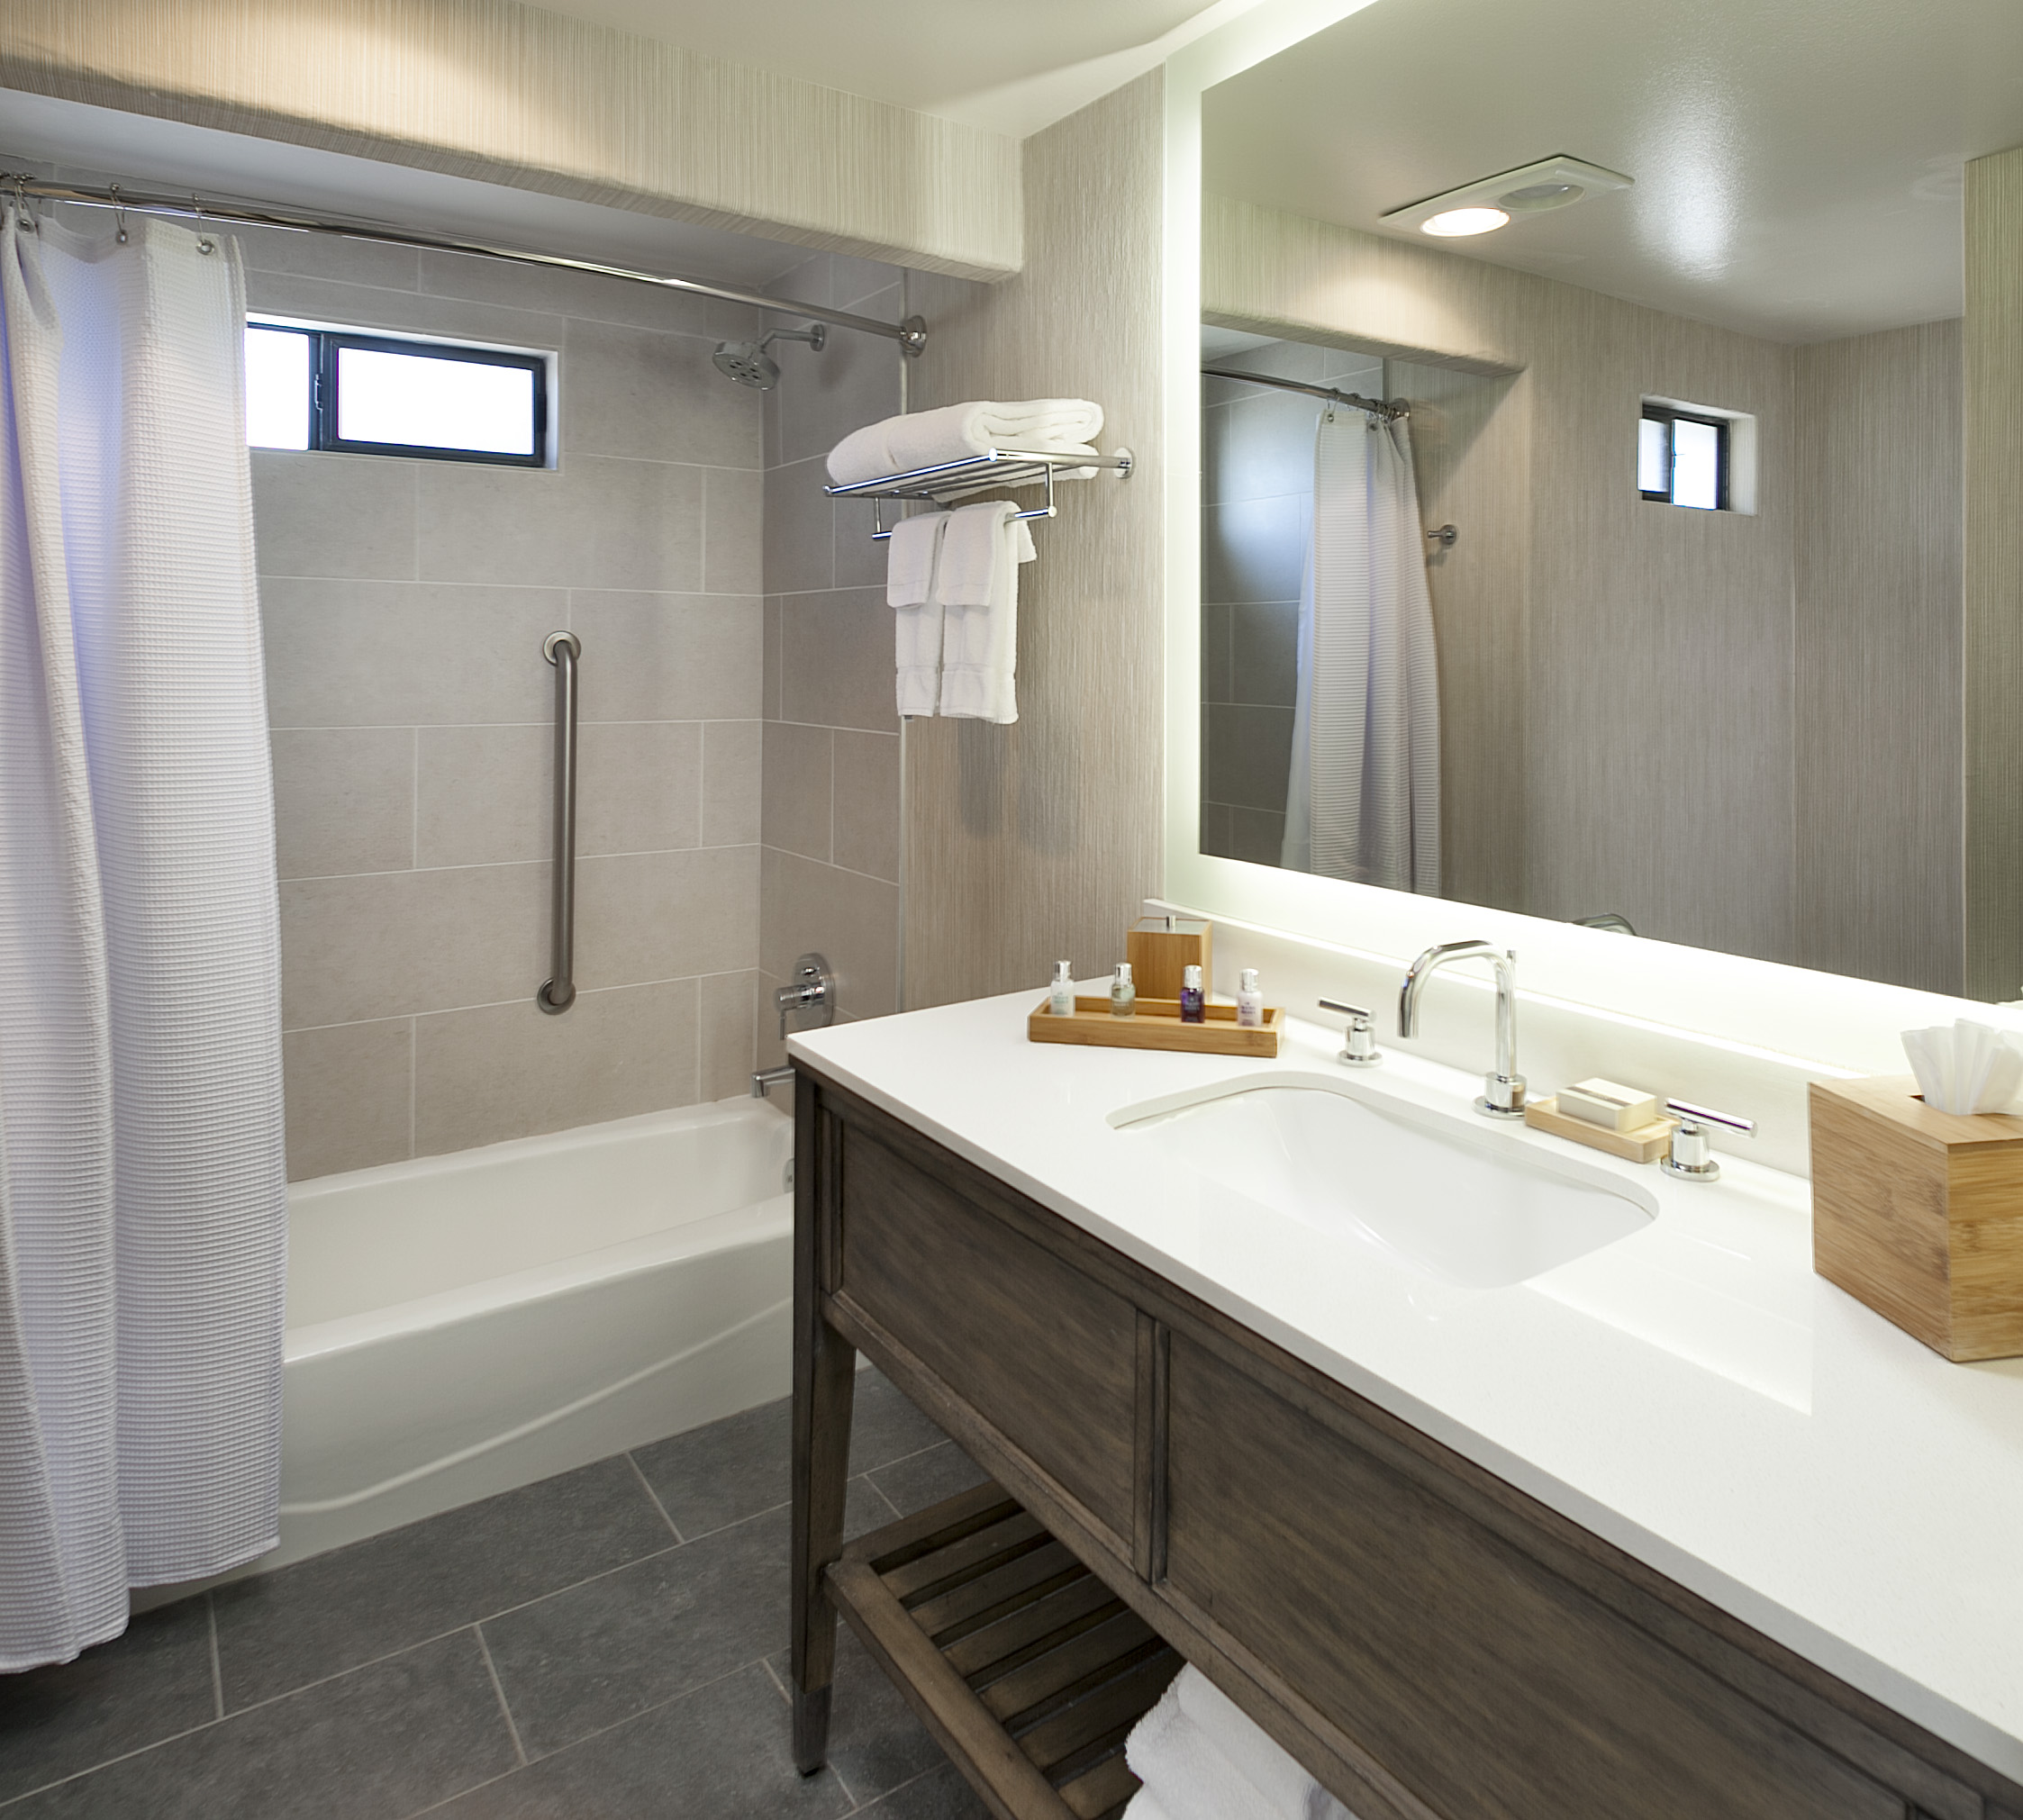 Hotel bathroom vanities with curved rod and shower trim kit